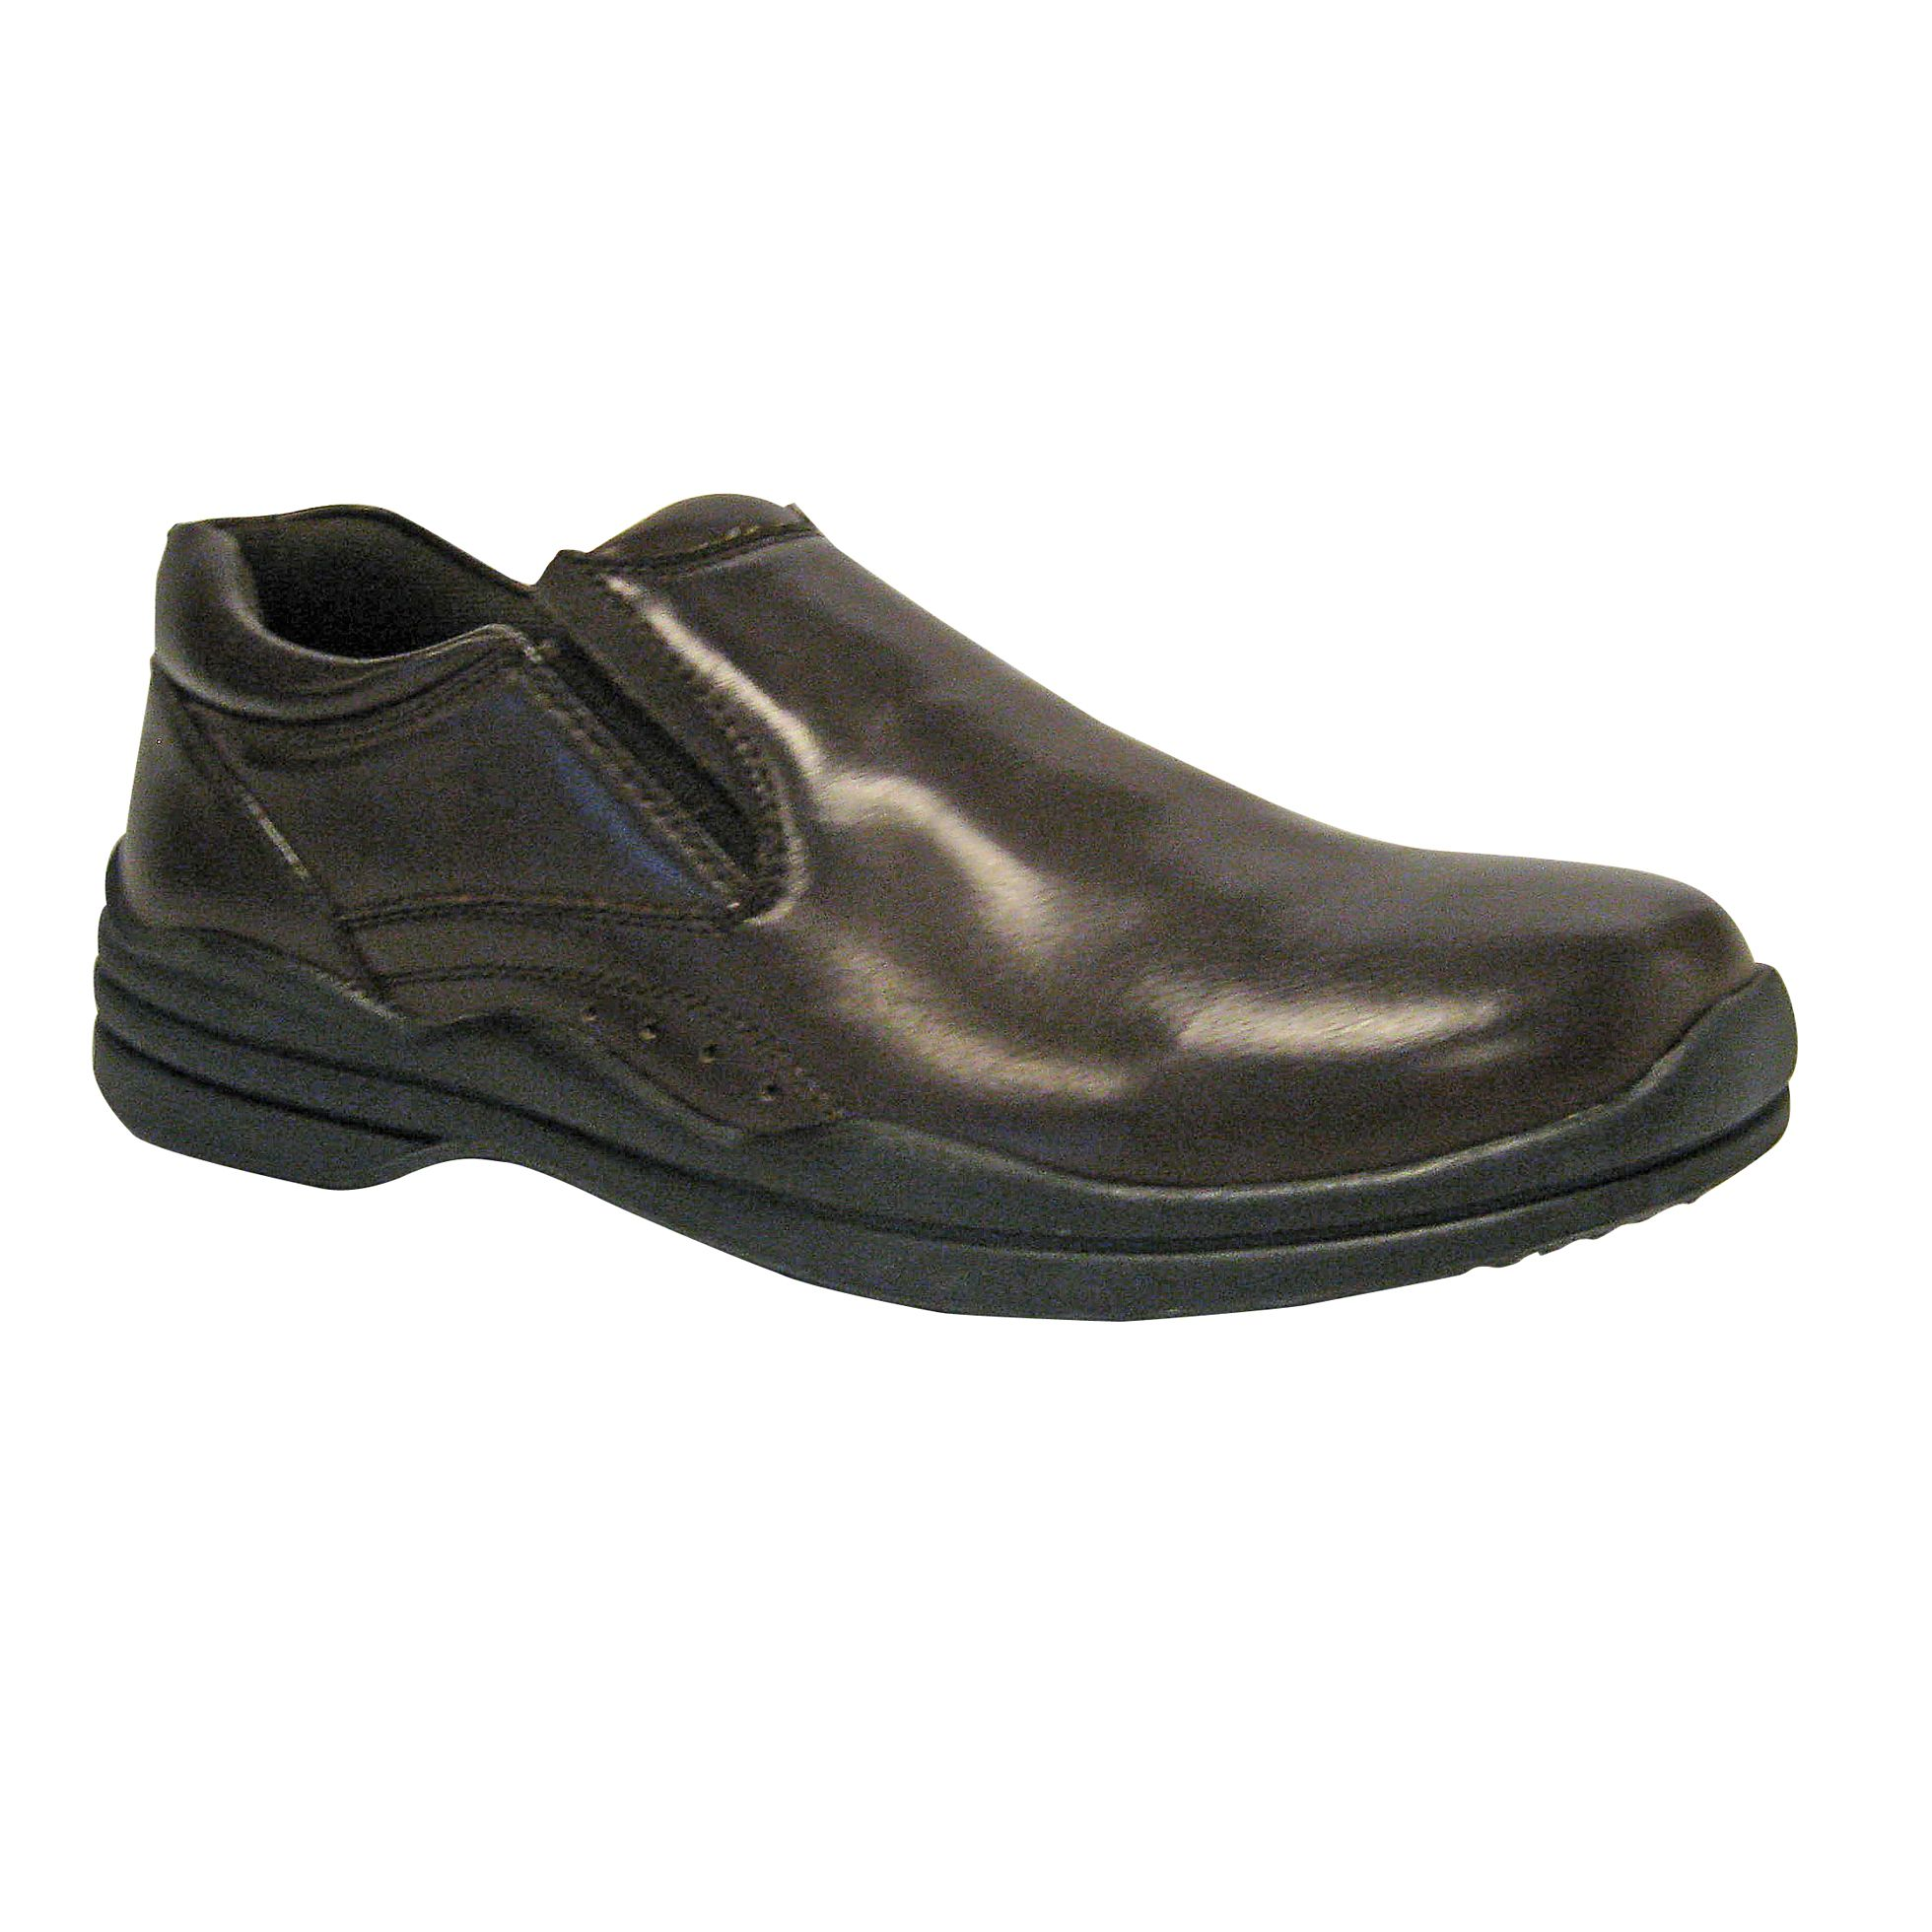 Men's Goal Slip-On Casual Shoe - Black